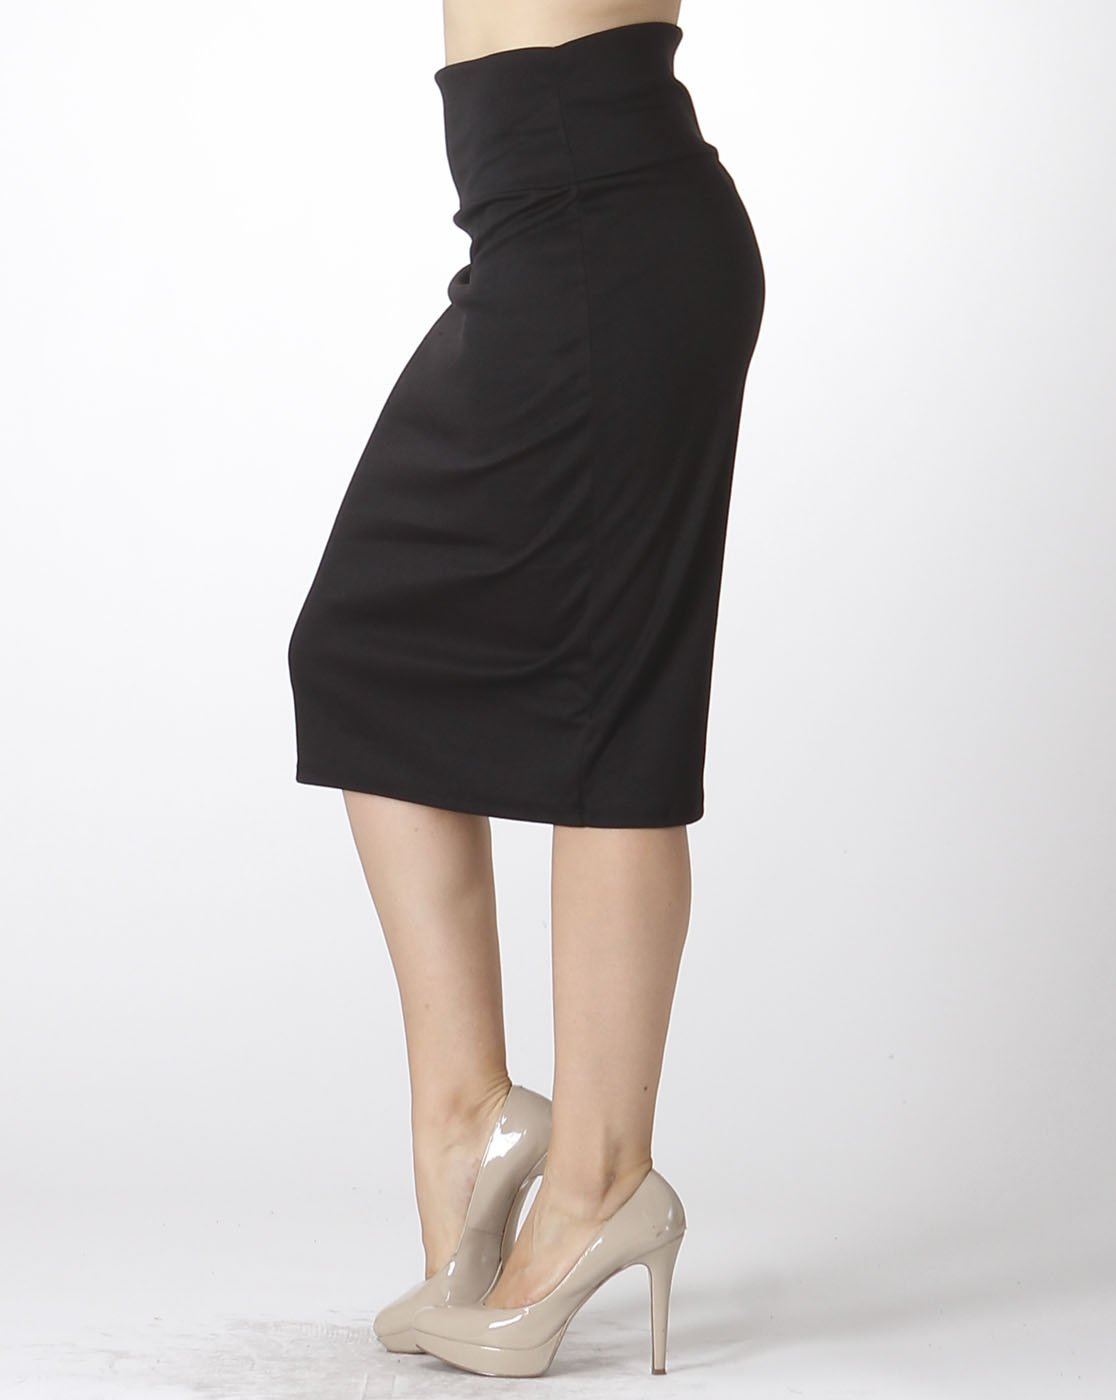 Bold And Beautiful Women's Knee Length Pencil Skirt – High Waisted – Fold Over – Stretchy – Plus Size – Made in USA (3X, Black)